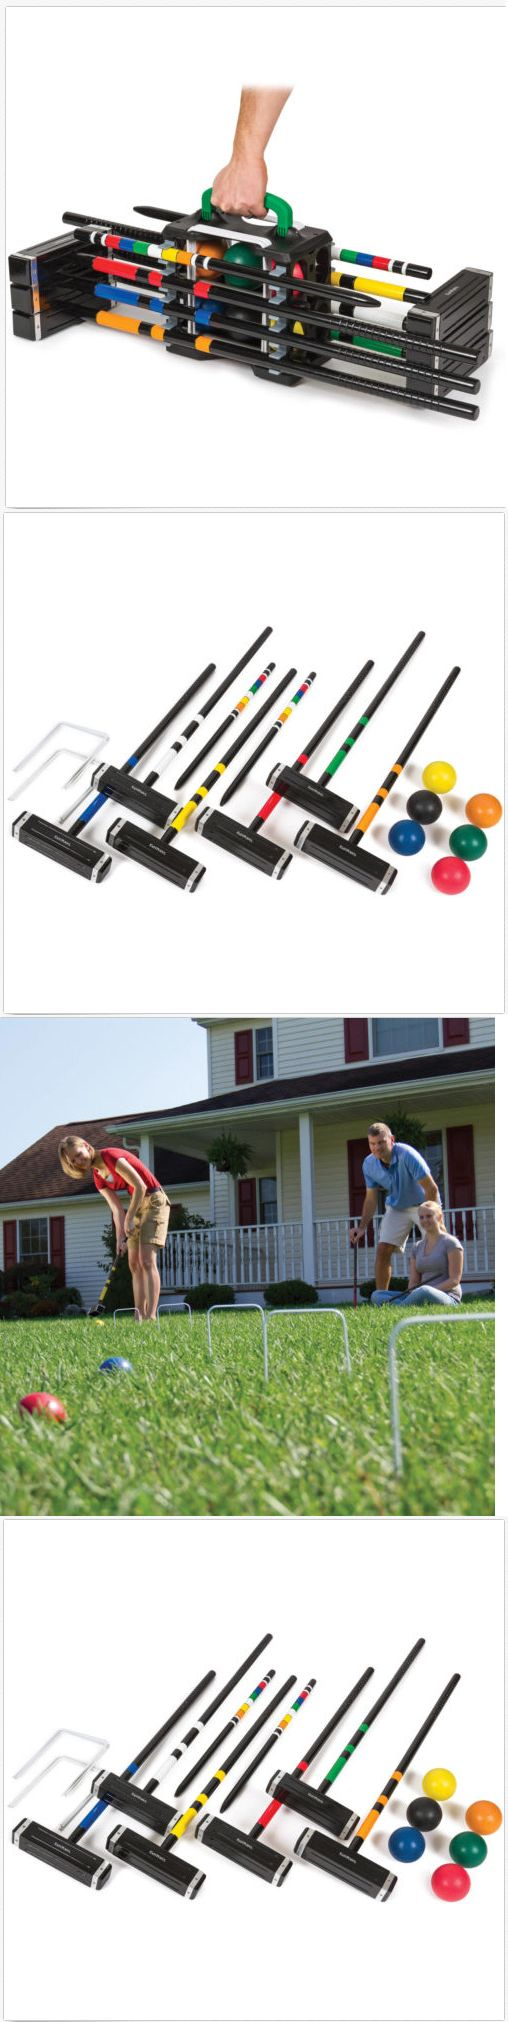 Croquet 117210: Eastpoint Sports 6-Player Croquet Set With Carrier Mallets Balls Stakes Wickets -> BUY IT NOW ONLY: $73.97 on eBay!